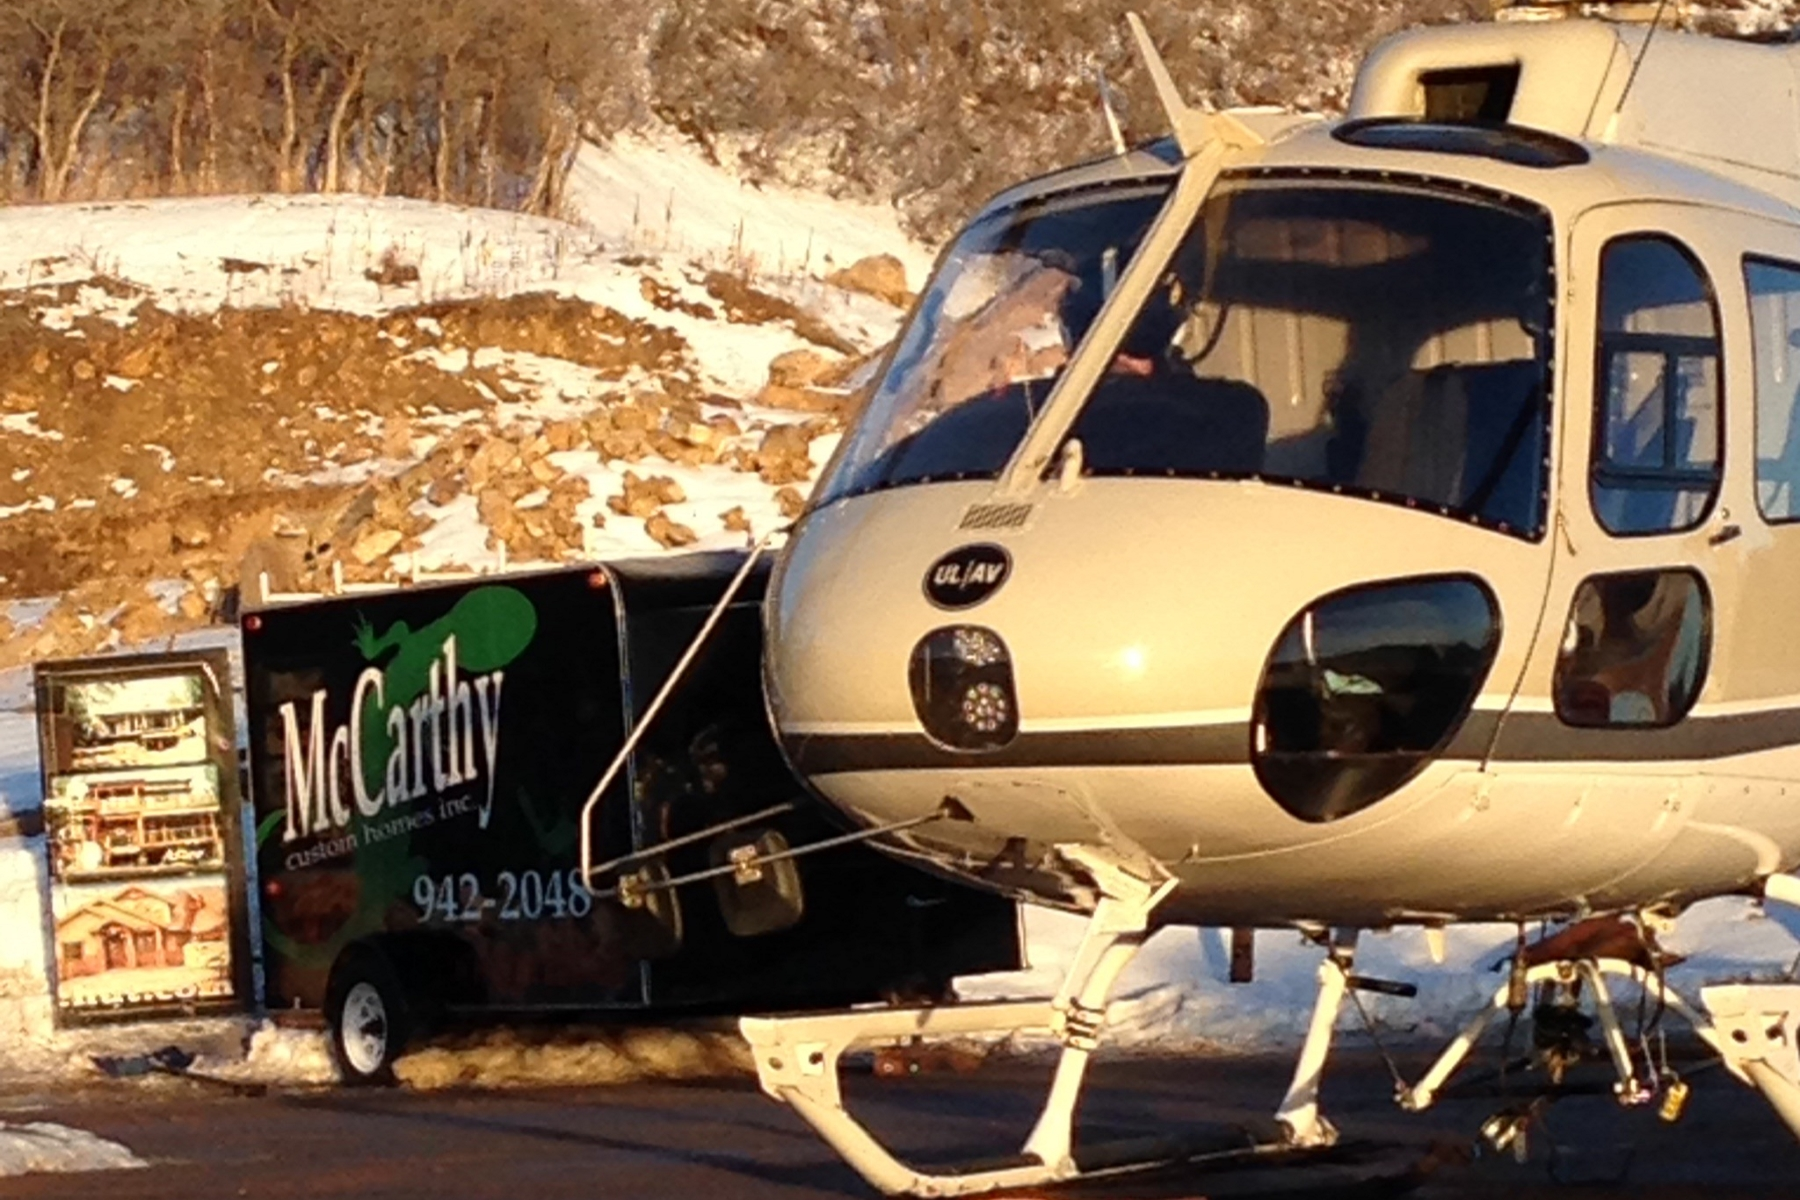 Heli Day For The Funicular